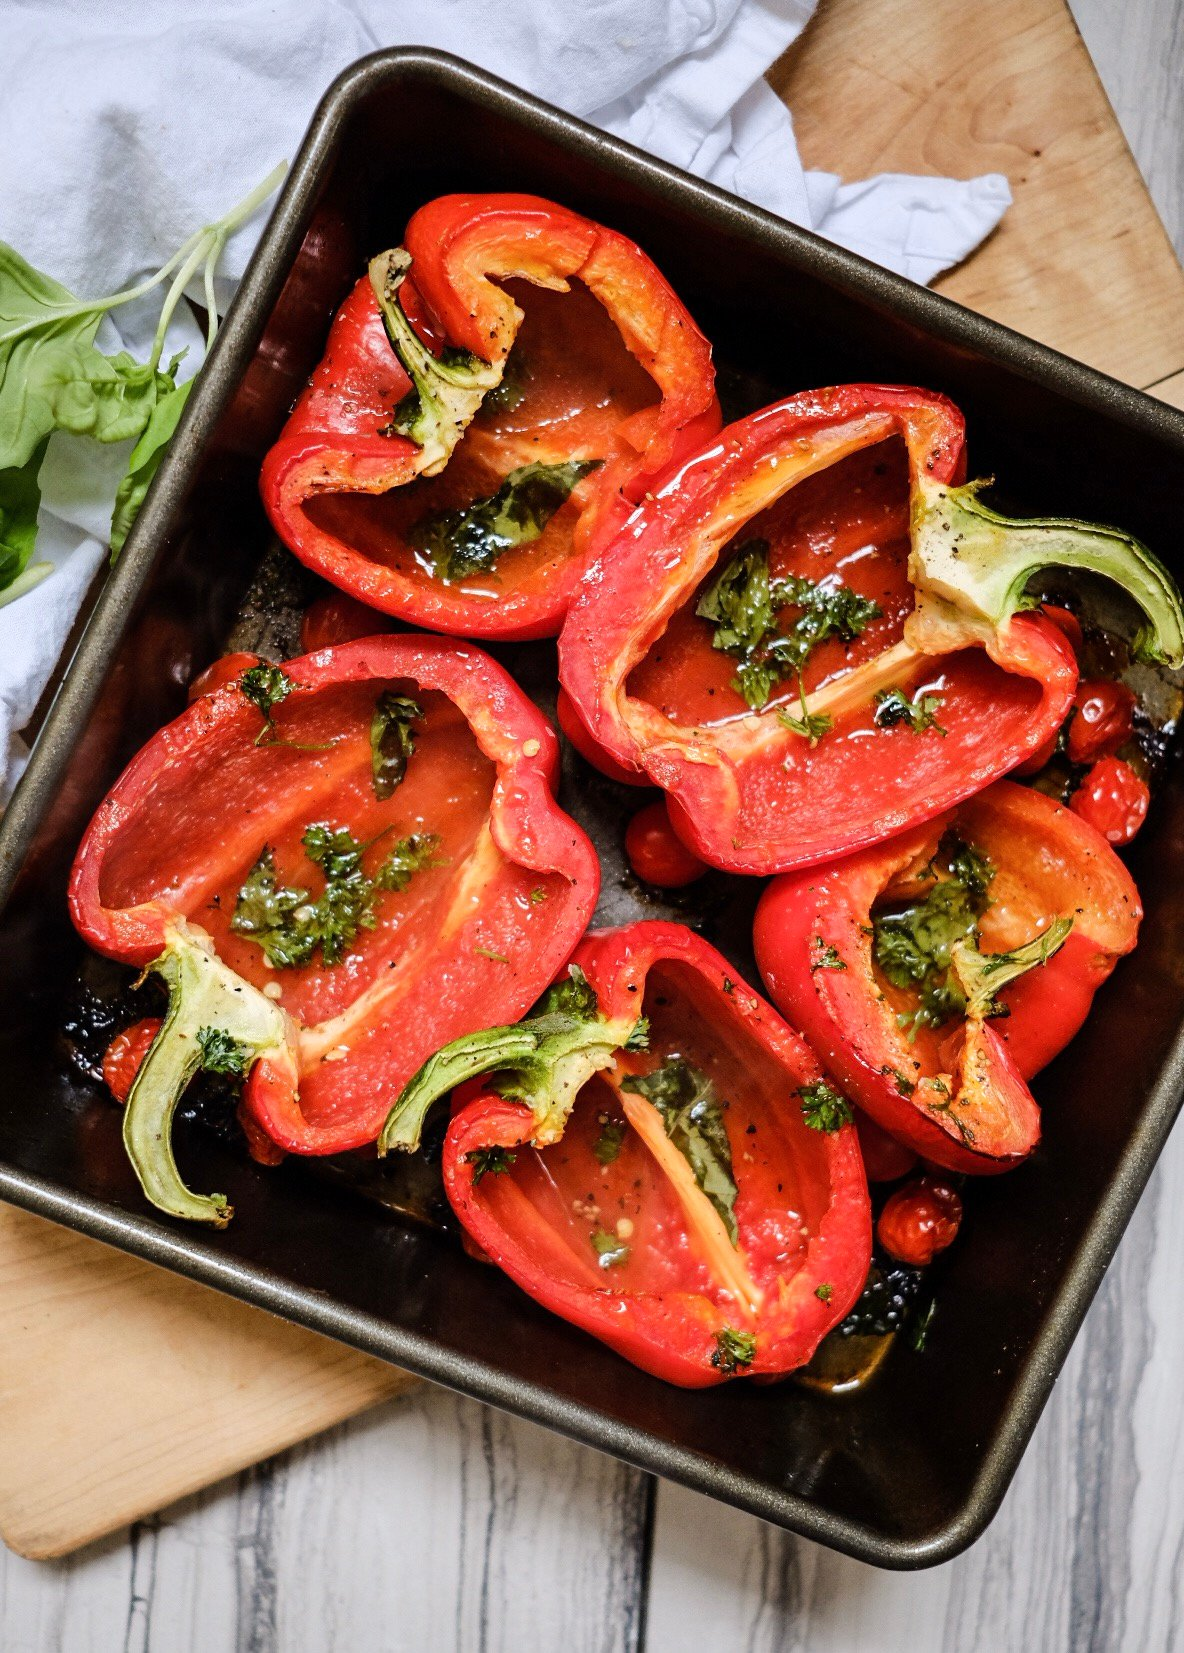 Lifestyle Blogger Jenny Meassick from Chocolate & Lace shares her recipe for Roasted Stuffed Peppers.